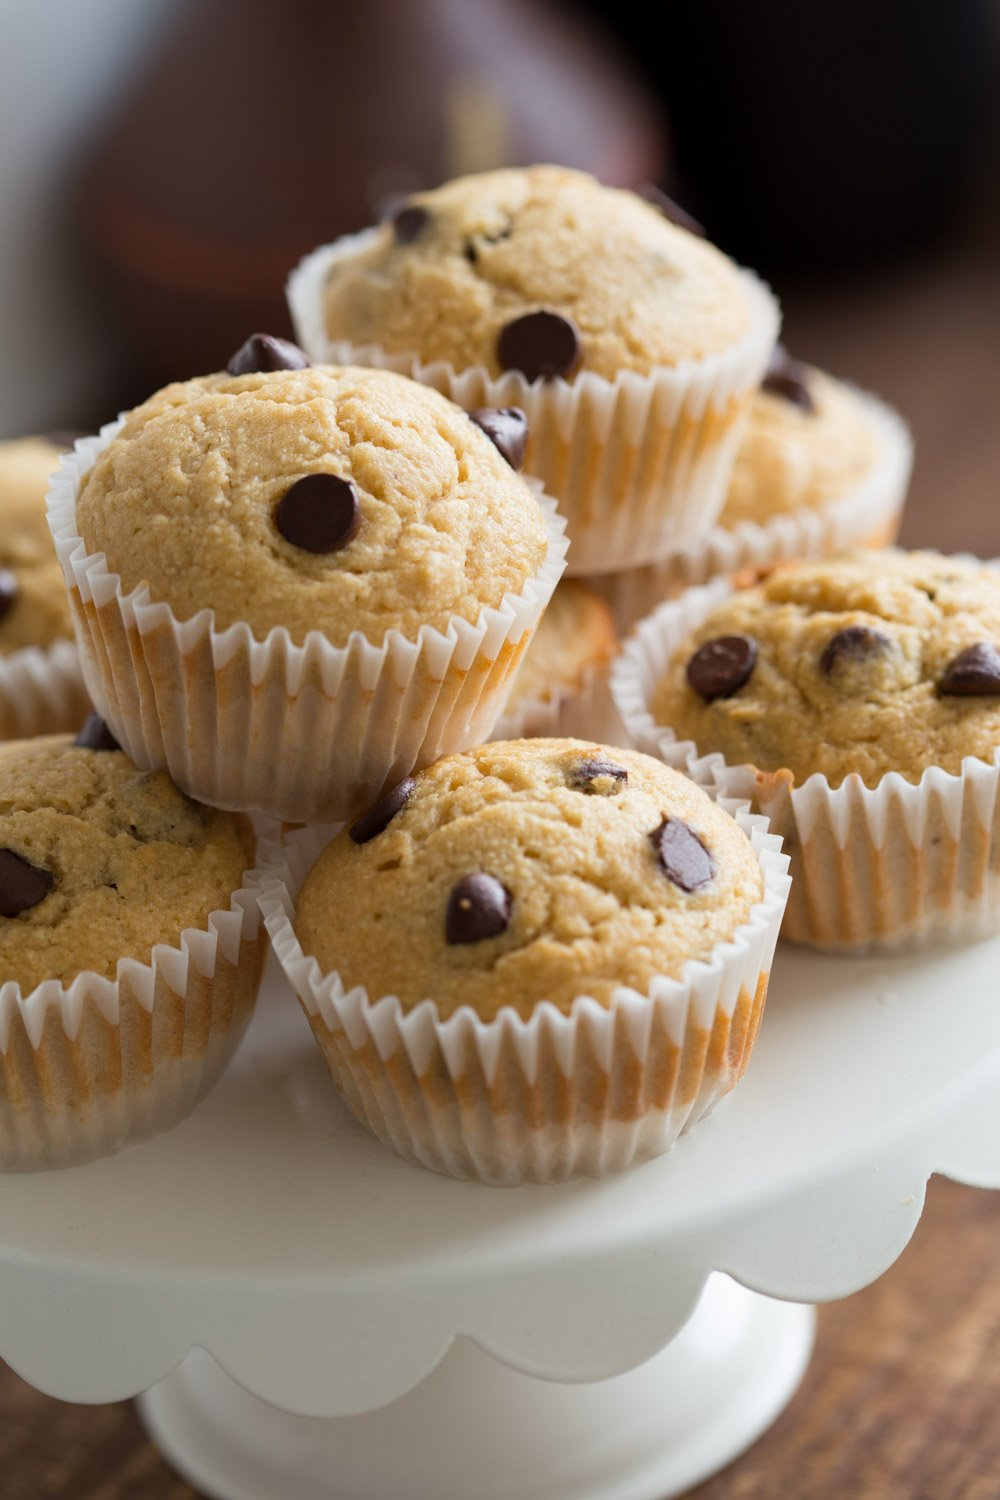 Vegan Chocolate Chip Muffins with coconut. These Soft, moist and chocolatey muffins take just a few minutes and have no added oil. #Vegan #Nutfree #Soyfree #Recipe #veganricha Use dried fruit instead of chocolate to make #oilfree | VeganRicha.com